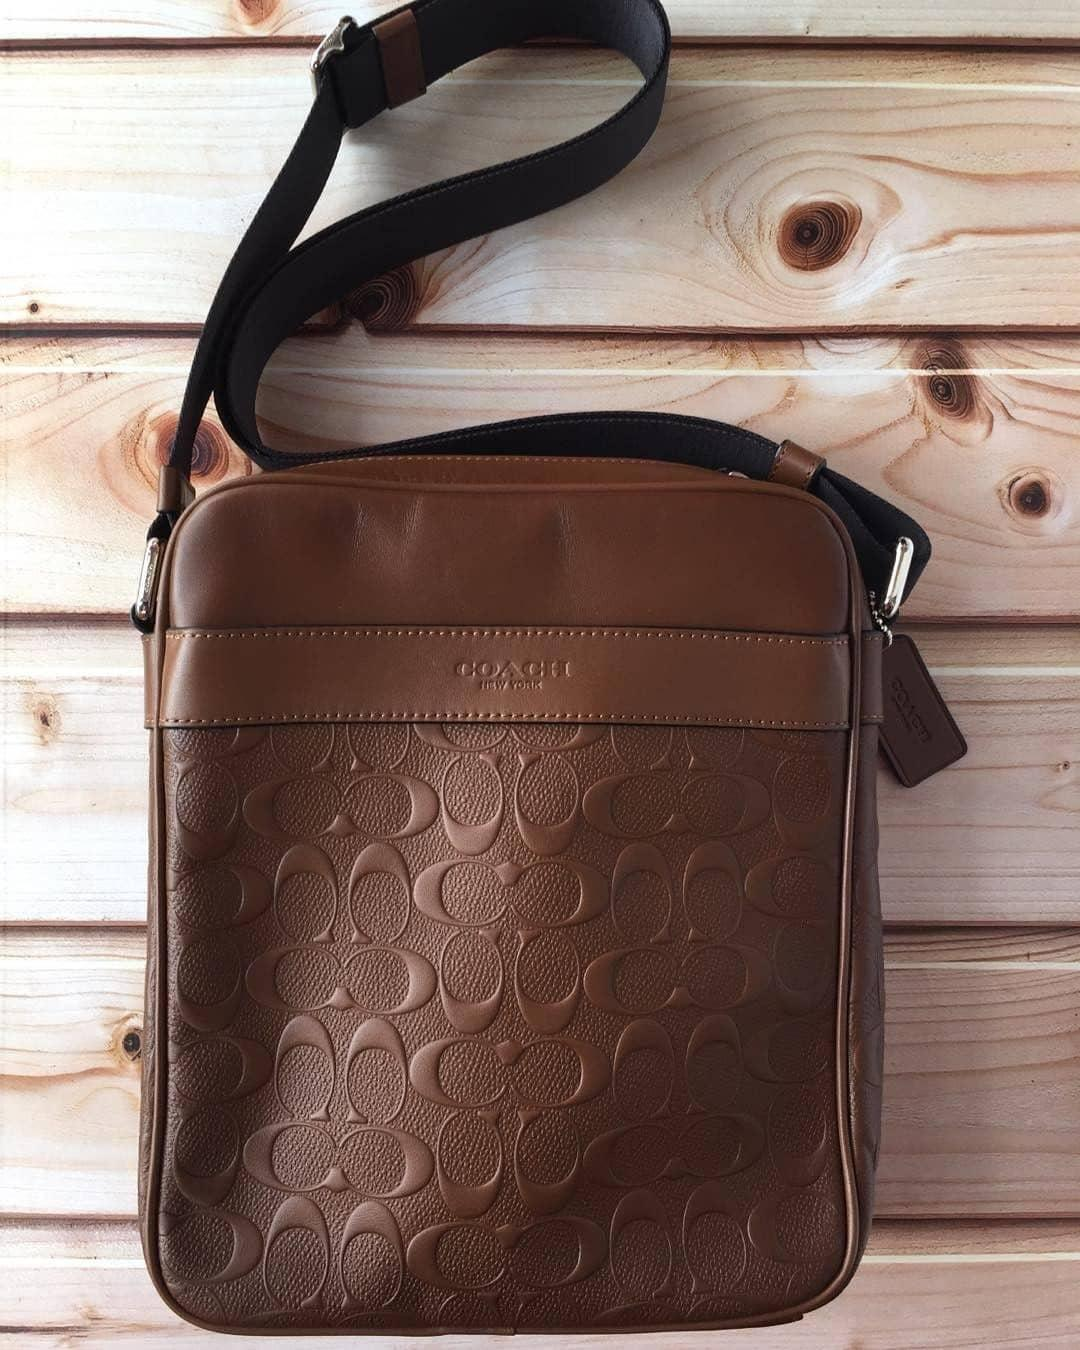 Sling Bags For Men Sale Cross Online Brands Coach Flight Bag Authentic Charles In Signature Leather Tan F24868